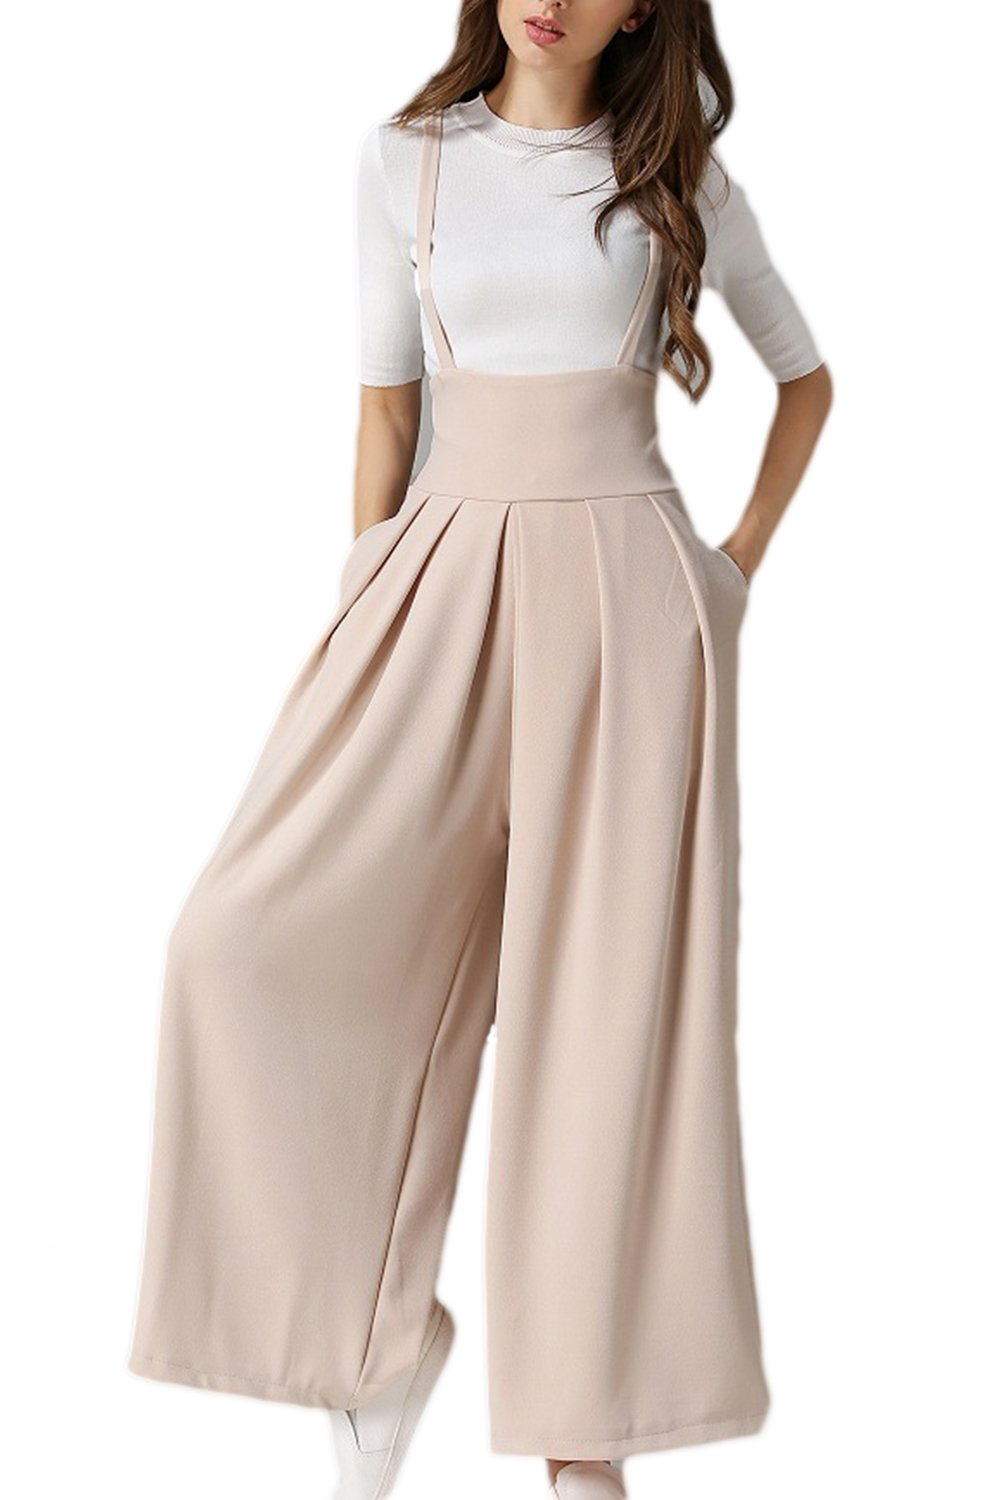 Women High Waist Jumpsuit Wide Leg Pleated Palazzo Trousers Overalls Suspender Pants CAESJY510